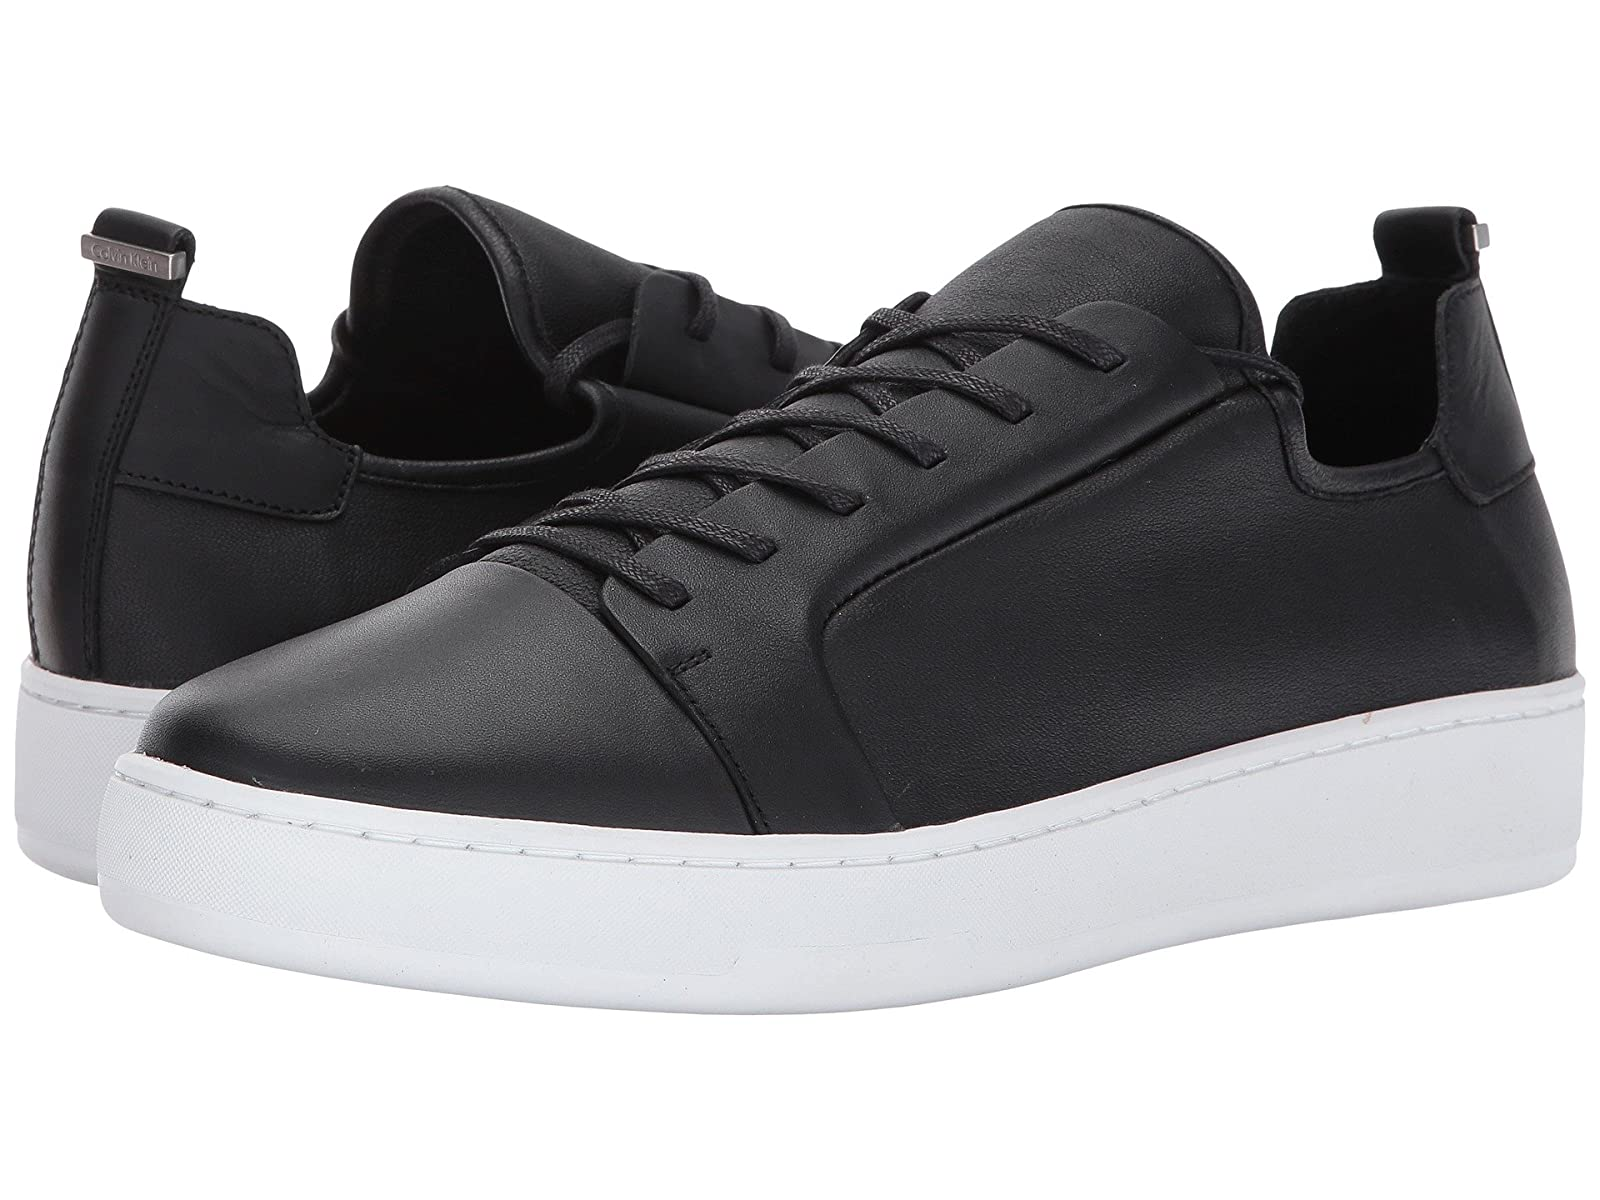 Calvin Klein NaylandCheap and distinctive eye-catching shoes